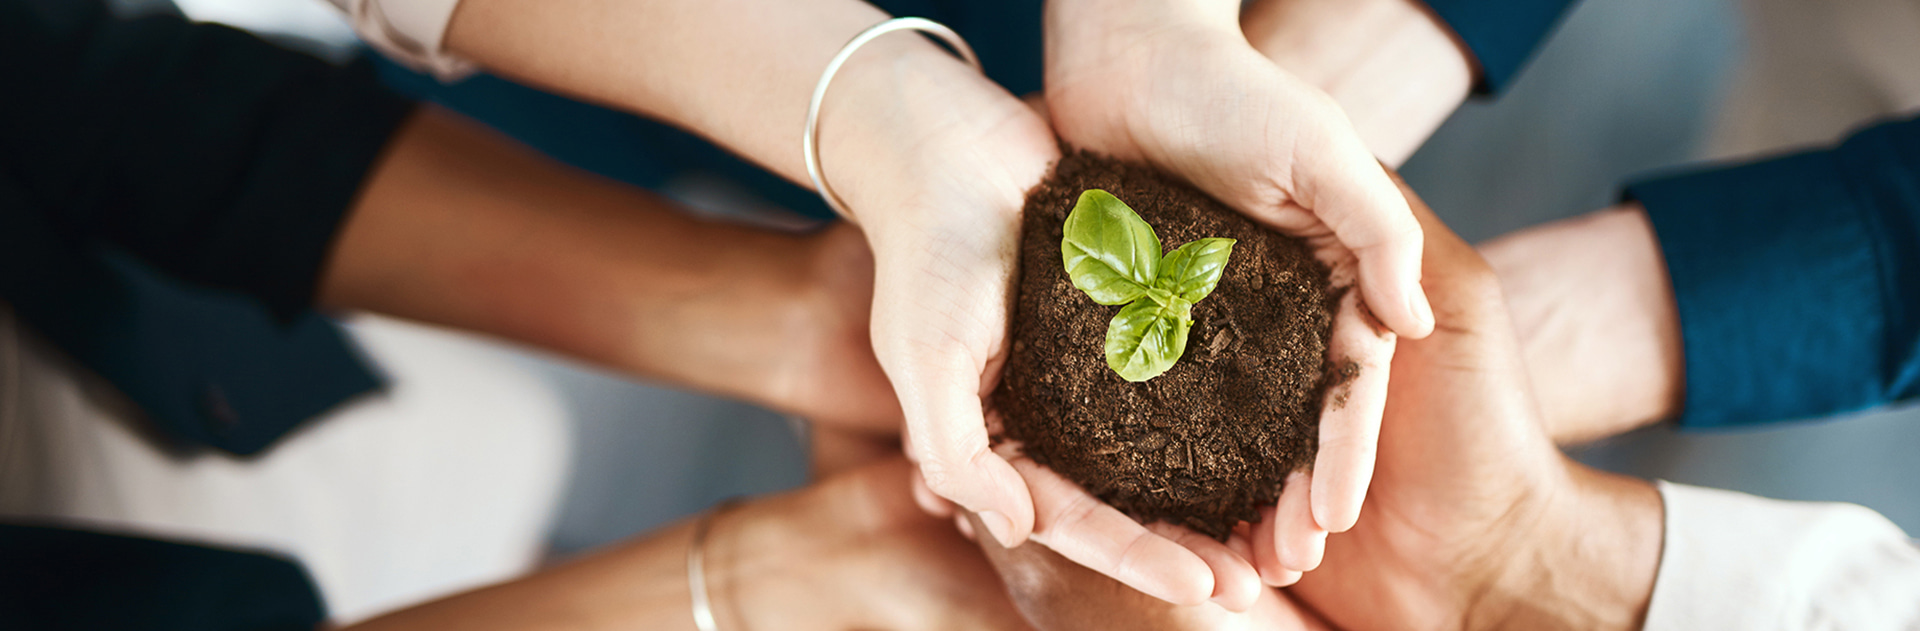 Diverse hands holding soil sprouting a green plant